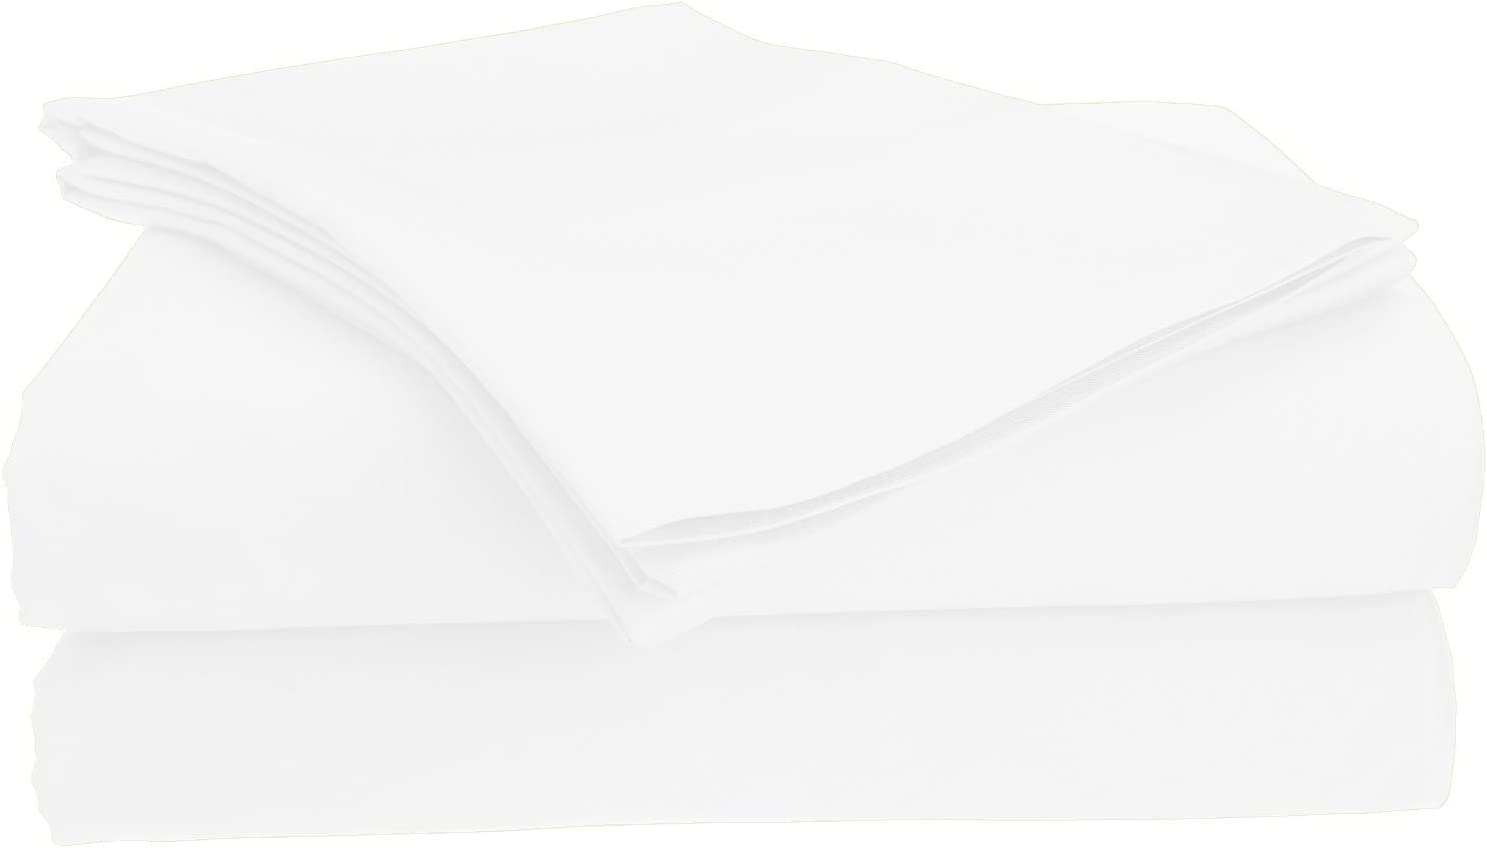 Posh Home 100% Cotton Breathable Double Brushed 4 Piece Sheet Set Softest Sheets Ever (White, King)